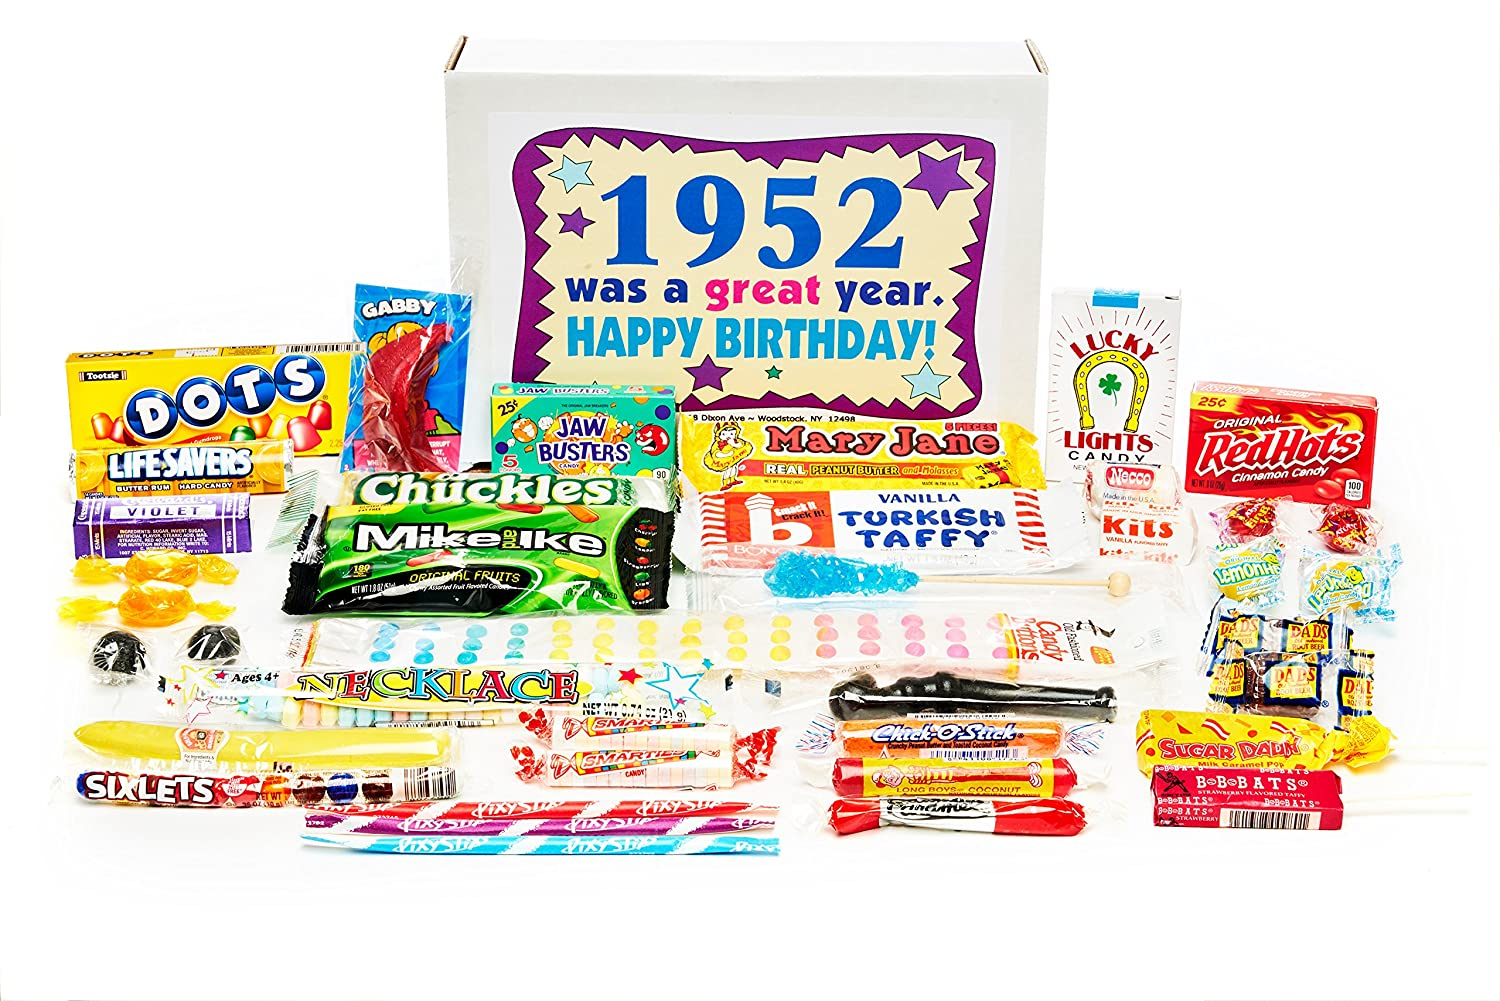 Woodstock Candy ~ 1952 67th Birthday Gift Box Nostalgic Retro Candy Mix  from Childhood for 67